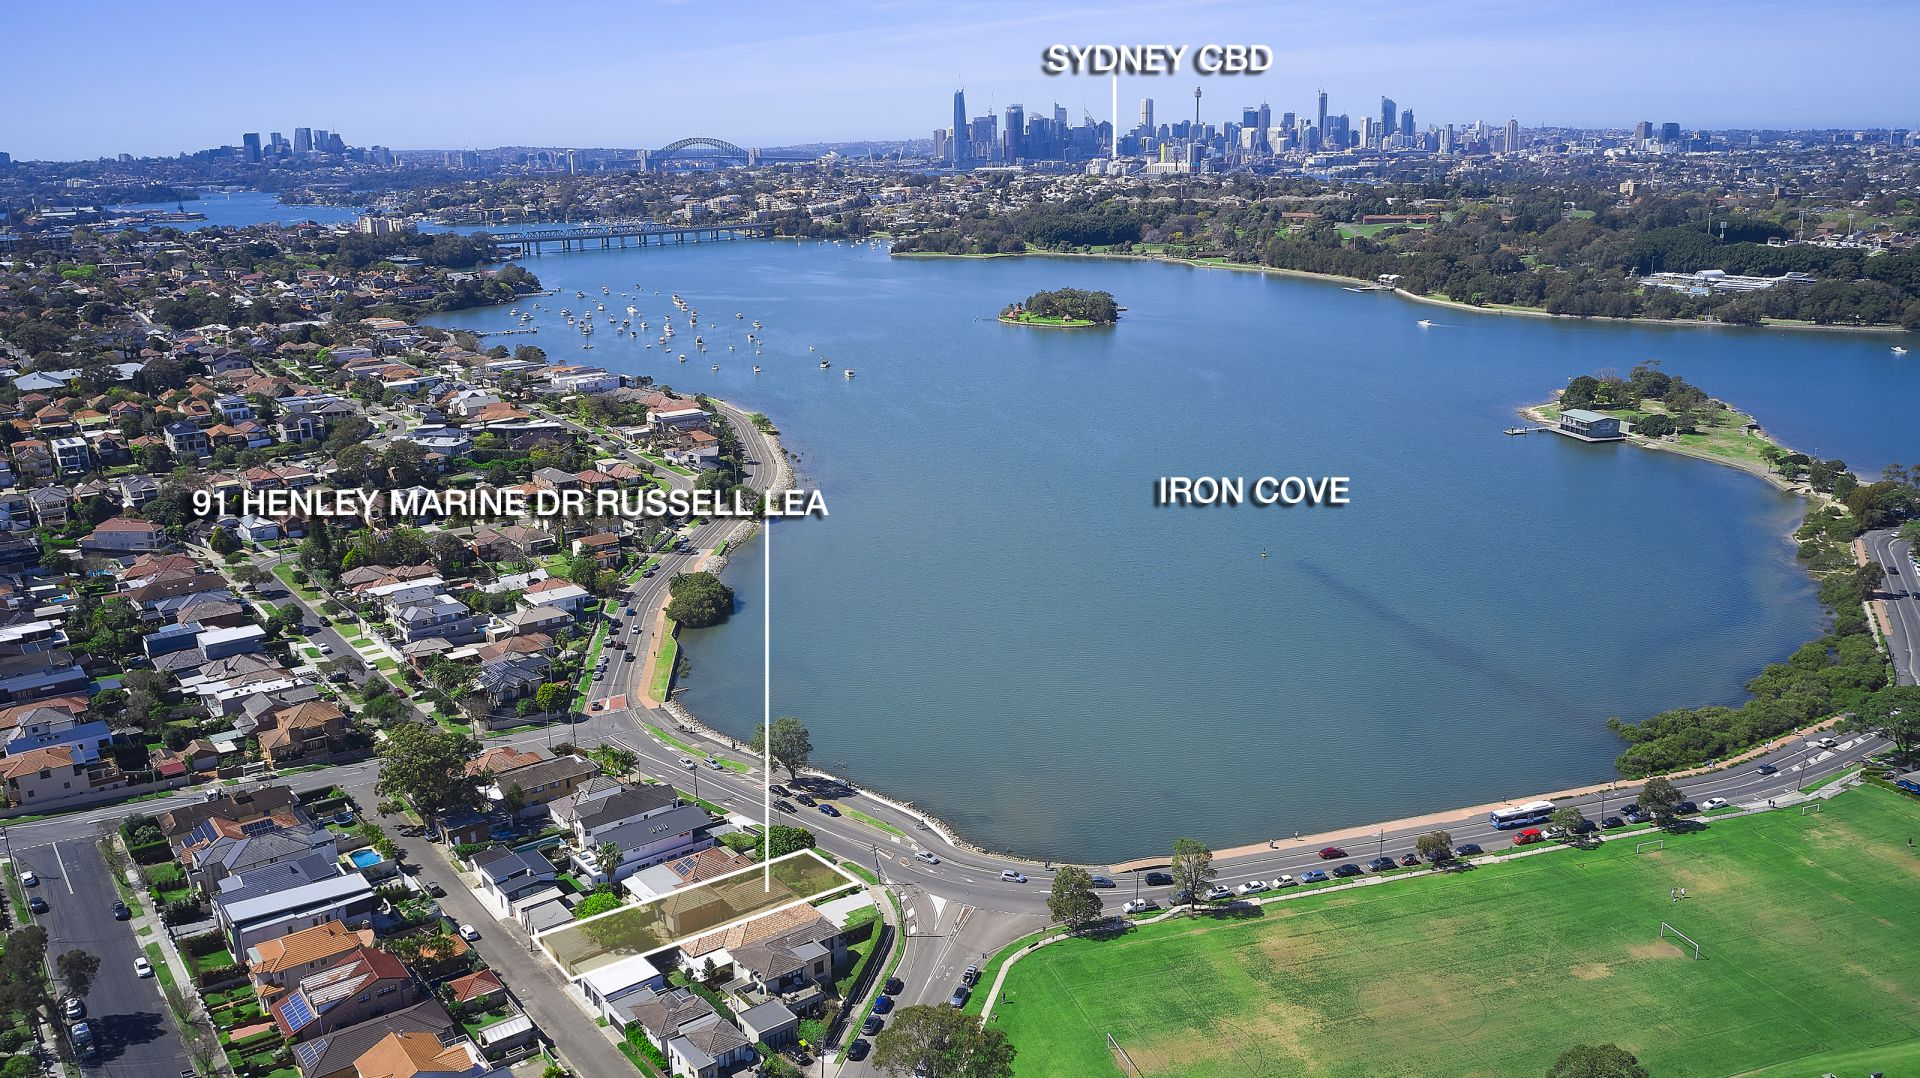 91 Henley Marine Drive, Russell Lea NSW